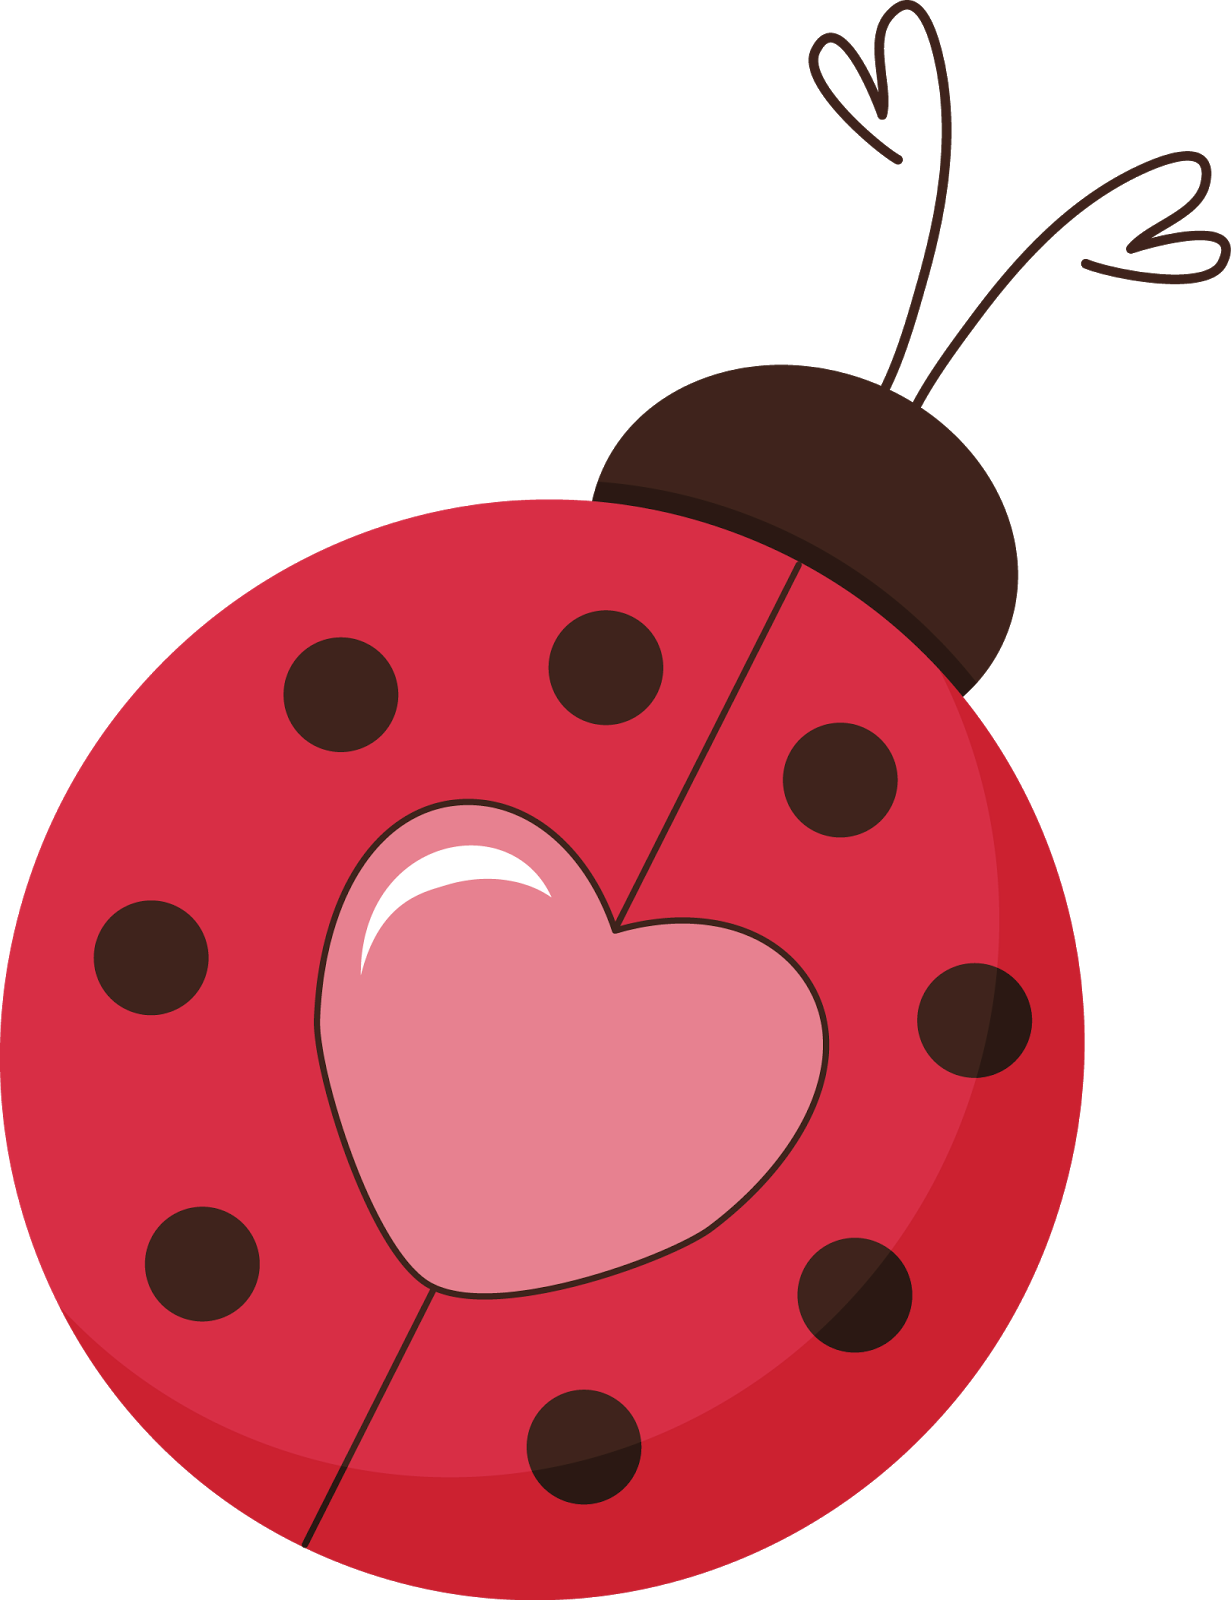 Insect clipart my cute graphic. The barefoot chorister love